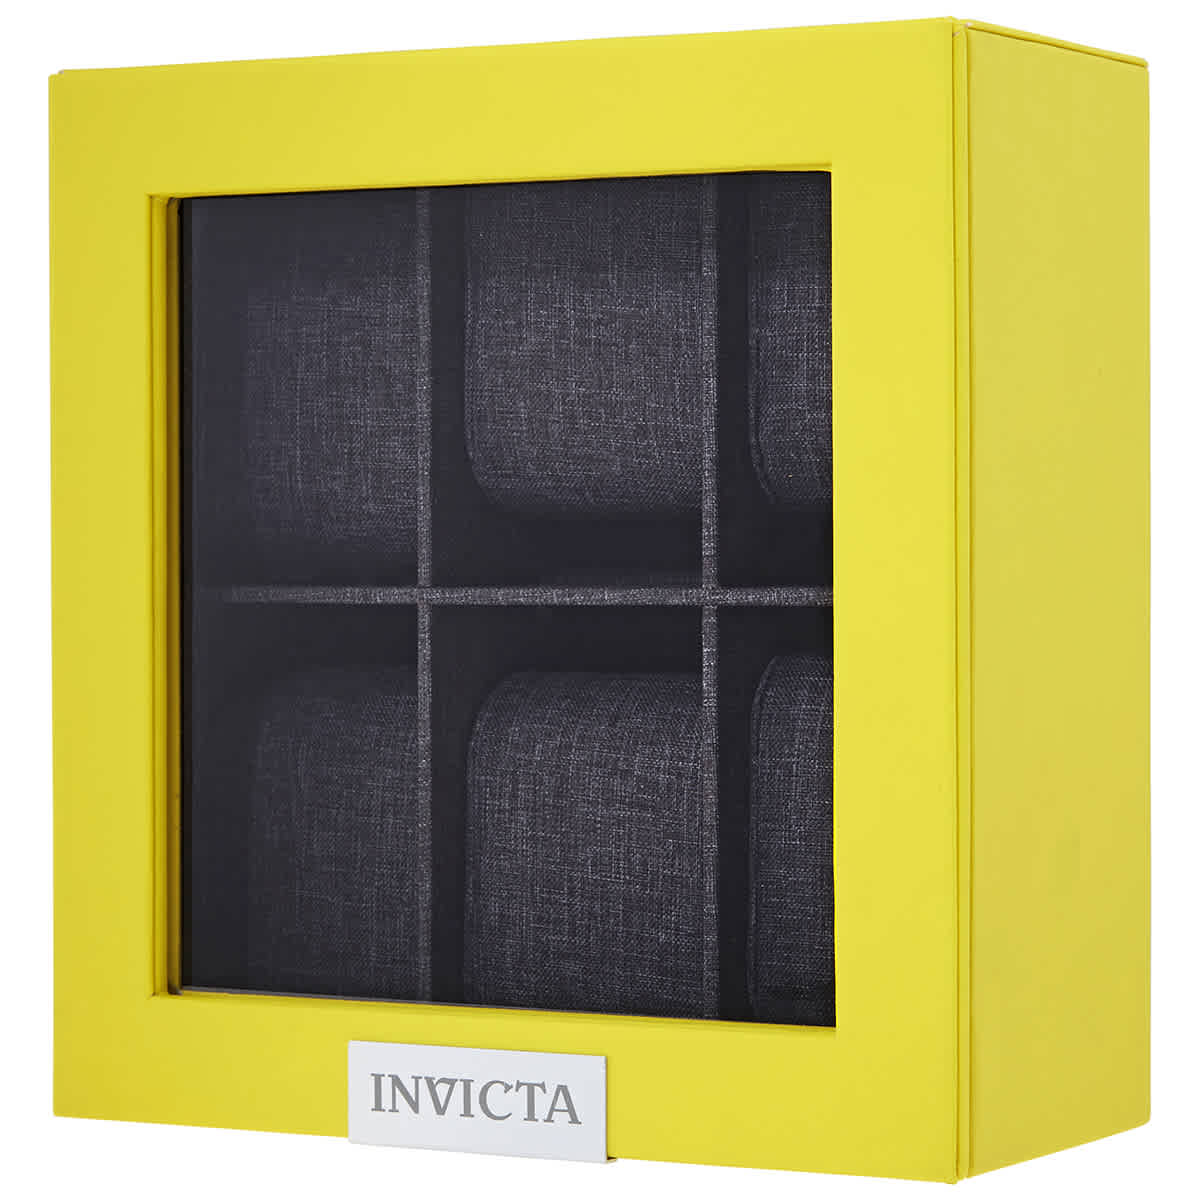 Invicta Watch 6-slot Display Case With Lid In Yellow